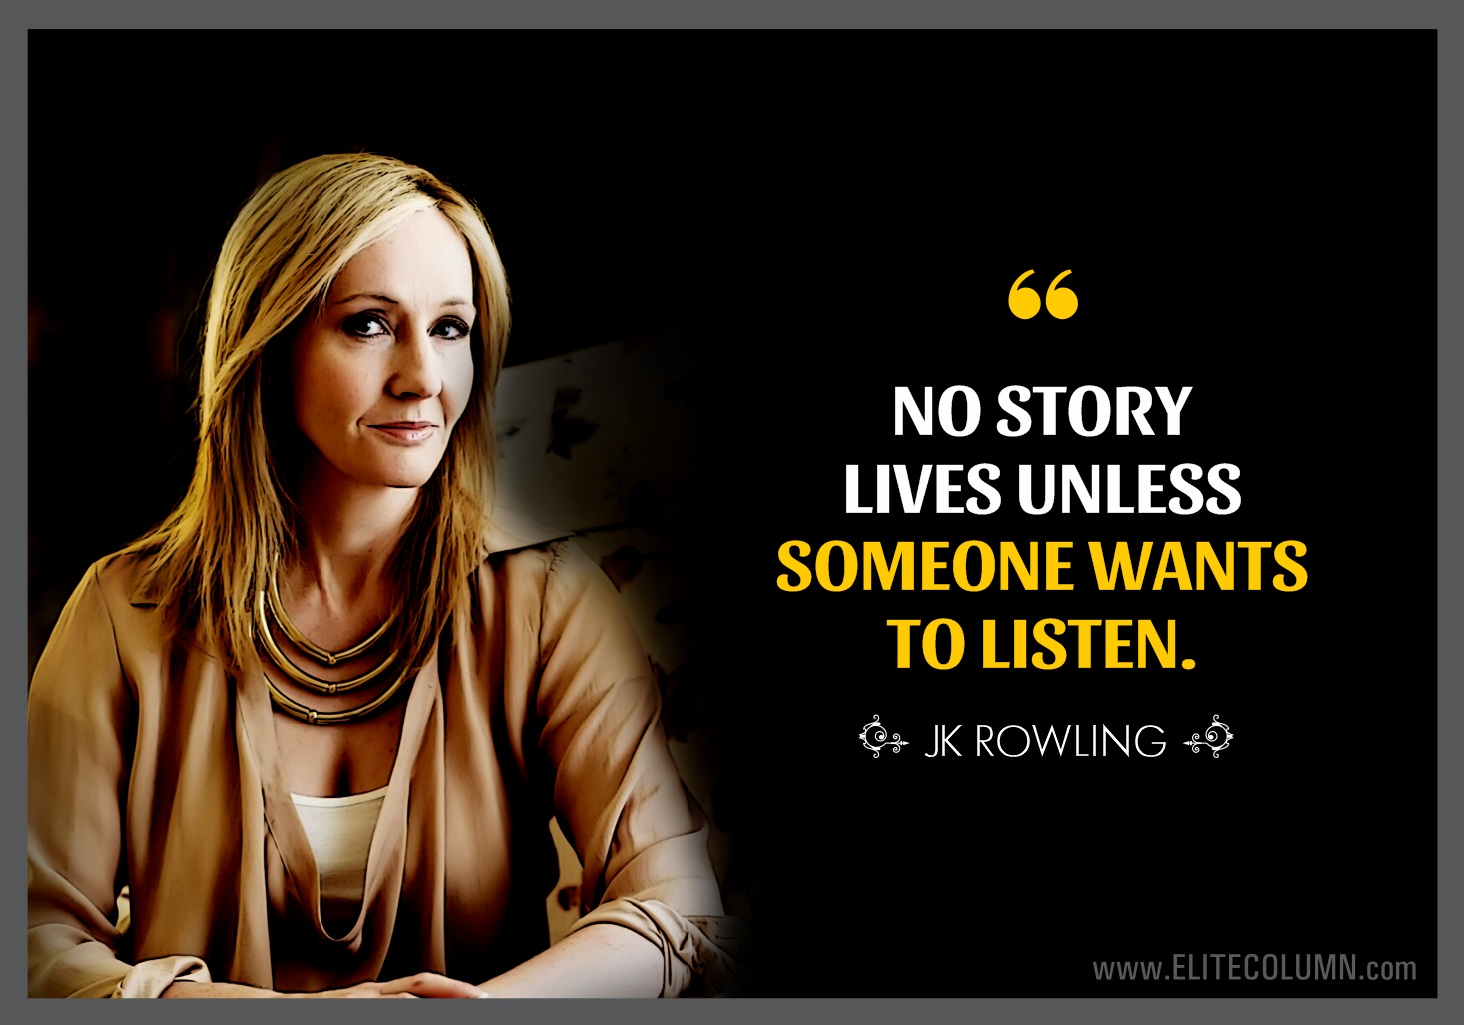 JK Rowling Quotes (4)